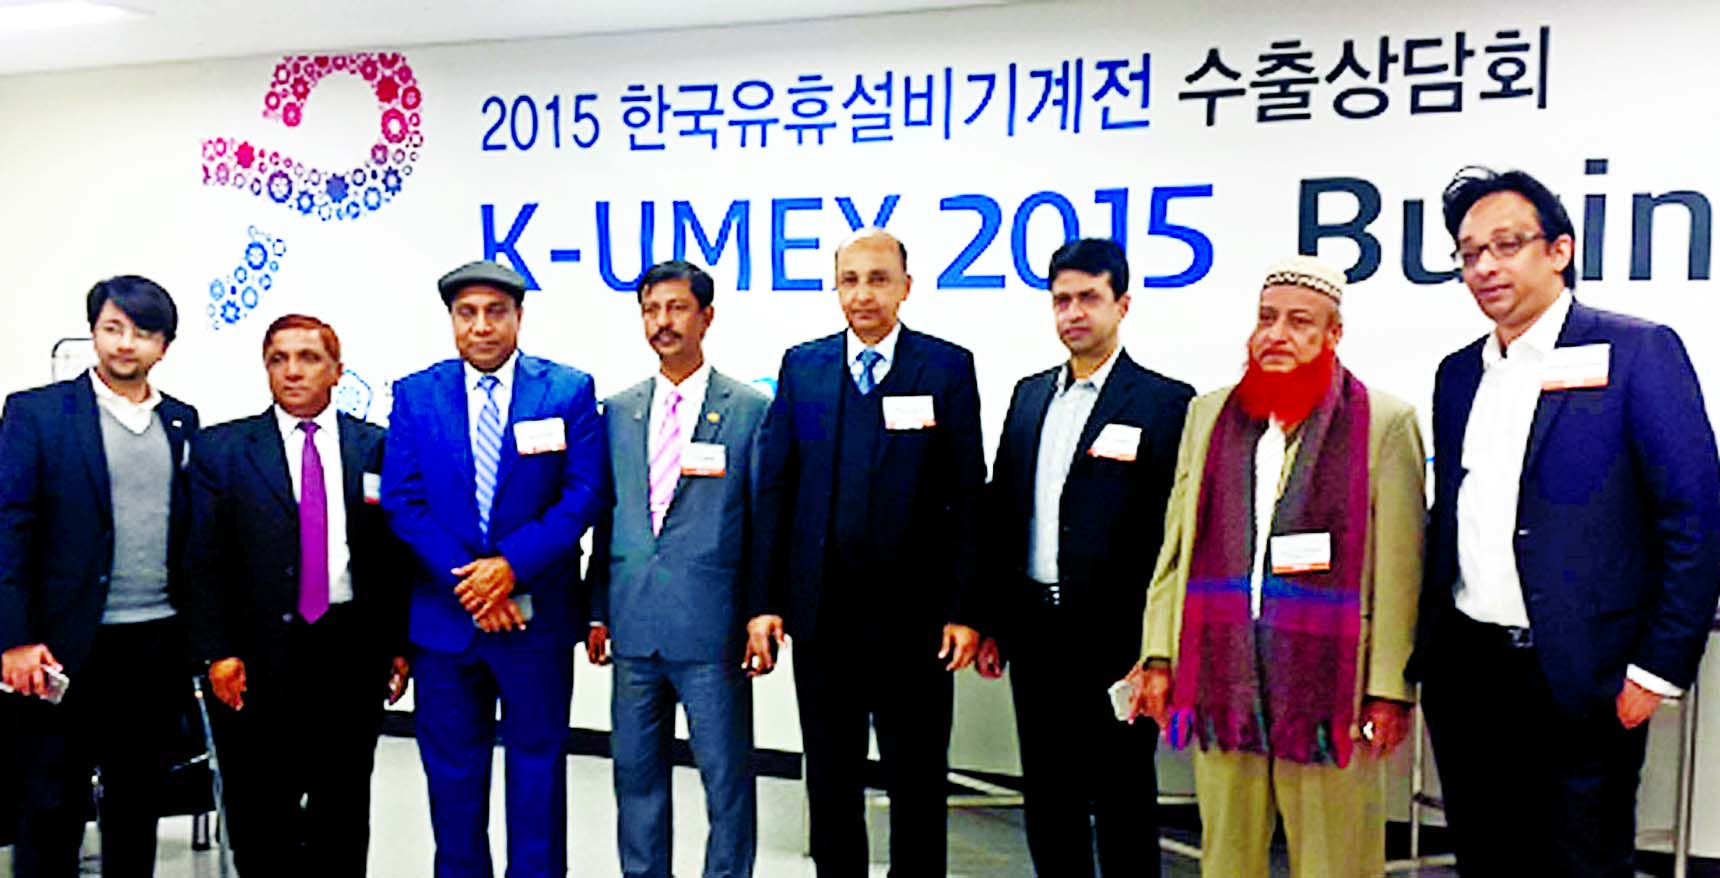 IBFB sees new business opportunity with Korea